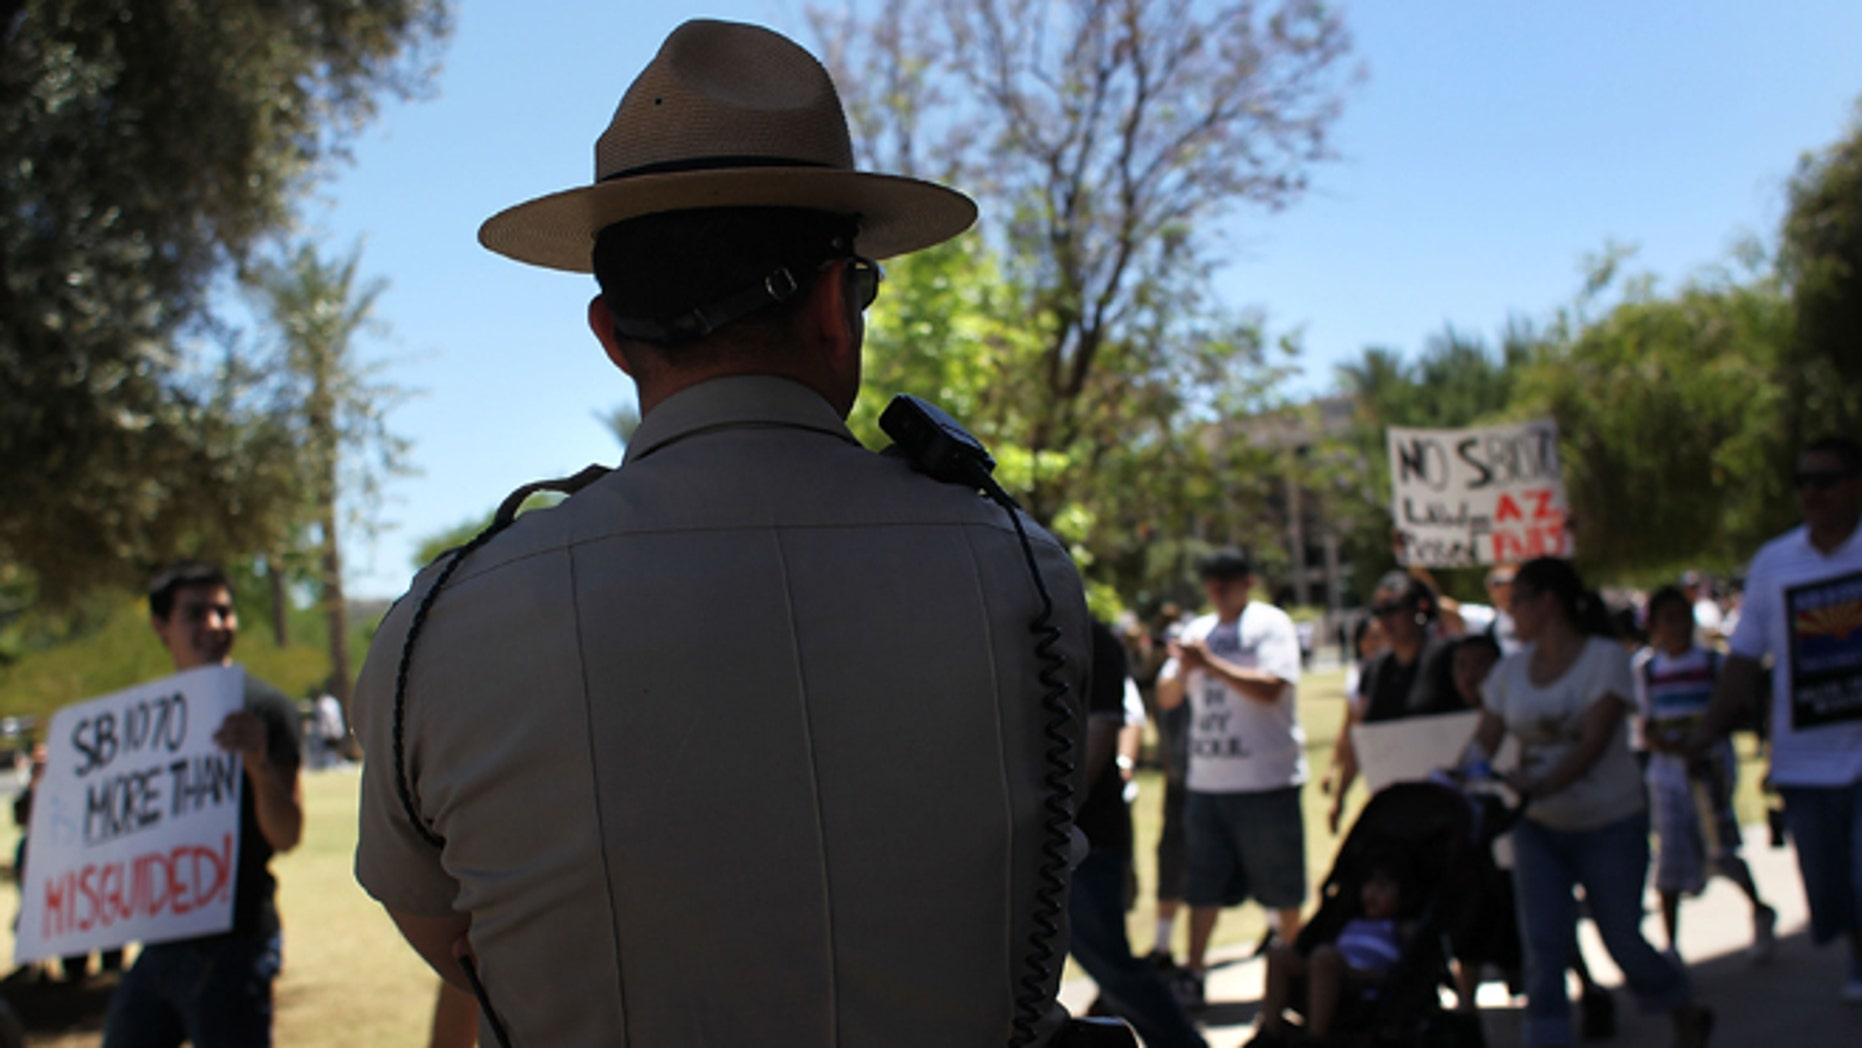 PHOENIX - MAY 01:  A police officer watches demonstrators protest Arizona's new immigration enforcement law during a May Day rally at the state capitol building on May 1, 2010 in Phoenix, Arizona. Thousands of people in cities across the United States protested the immigration law, which critics have said could encourage racial profiling against Hispanics by police officers.  (Photo by John Moore/Getty Images)